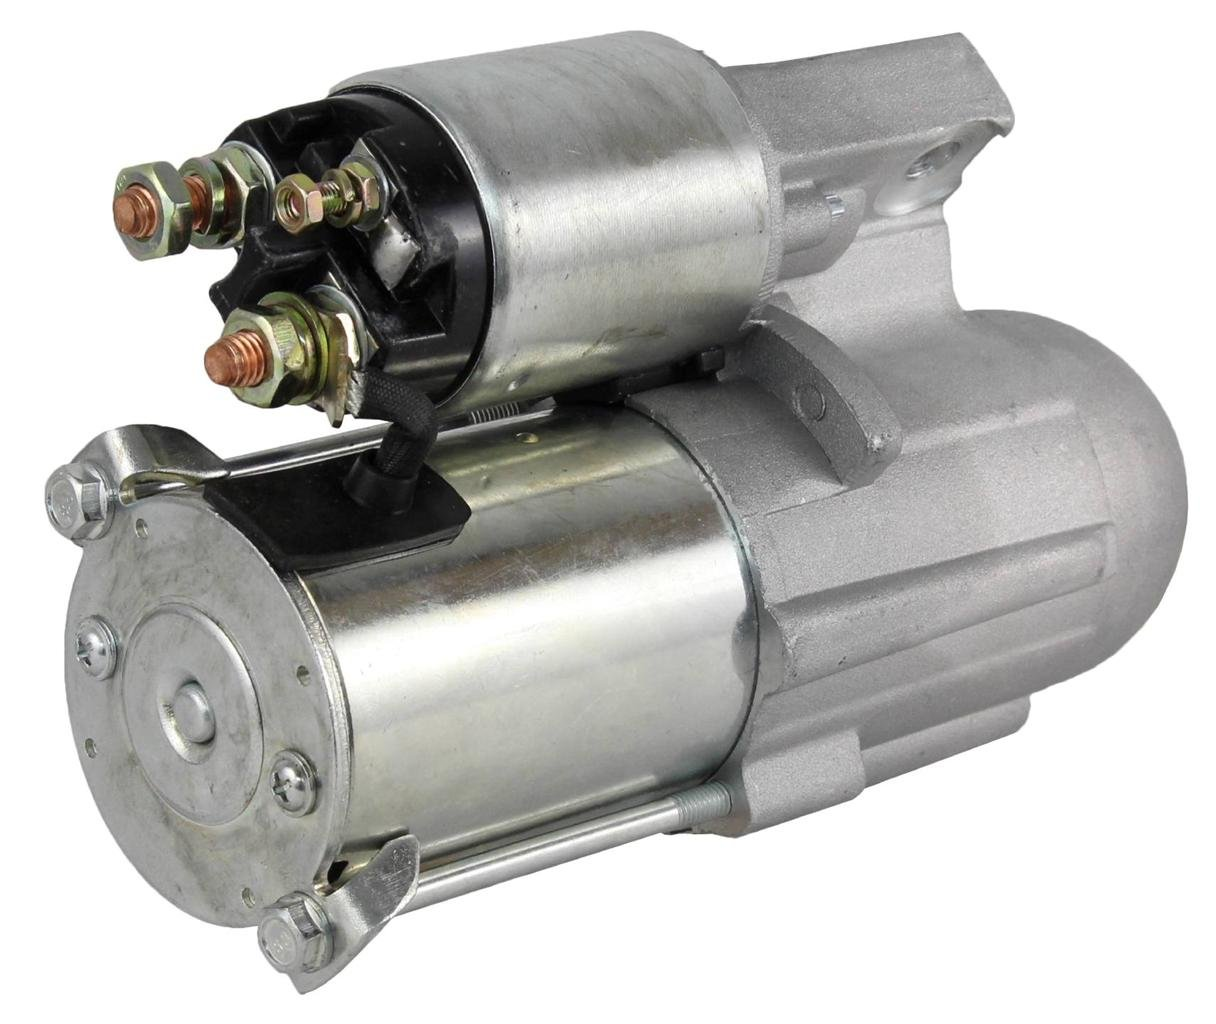 New Starter Fits 2002 2003 2004 2005 Buick Rendezvous Cx Electrical Problems With 2007 34l 207 1999 2000 2001 2 Automotive